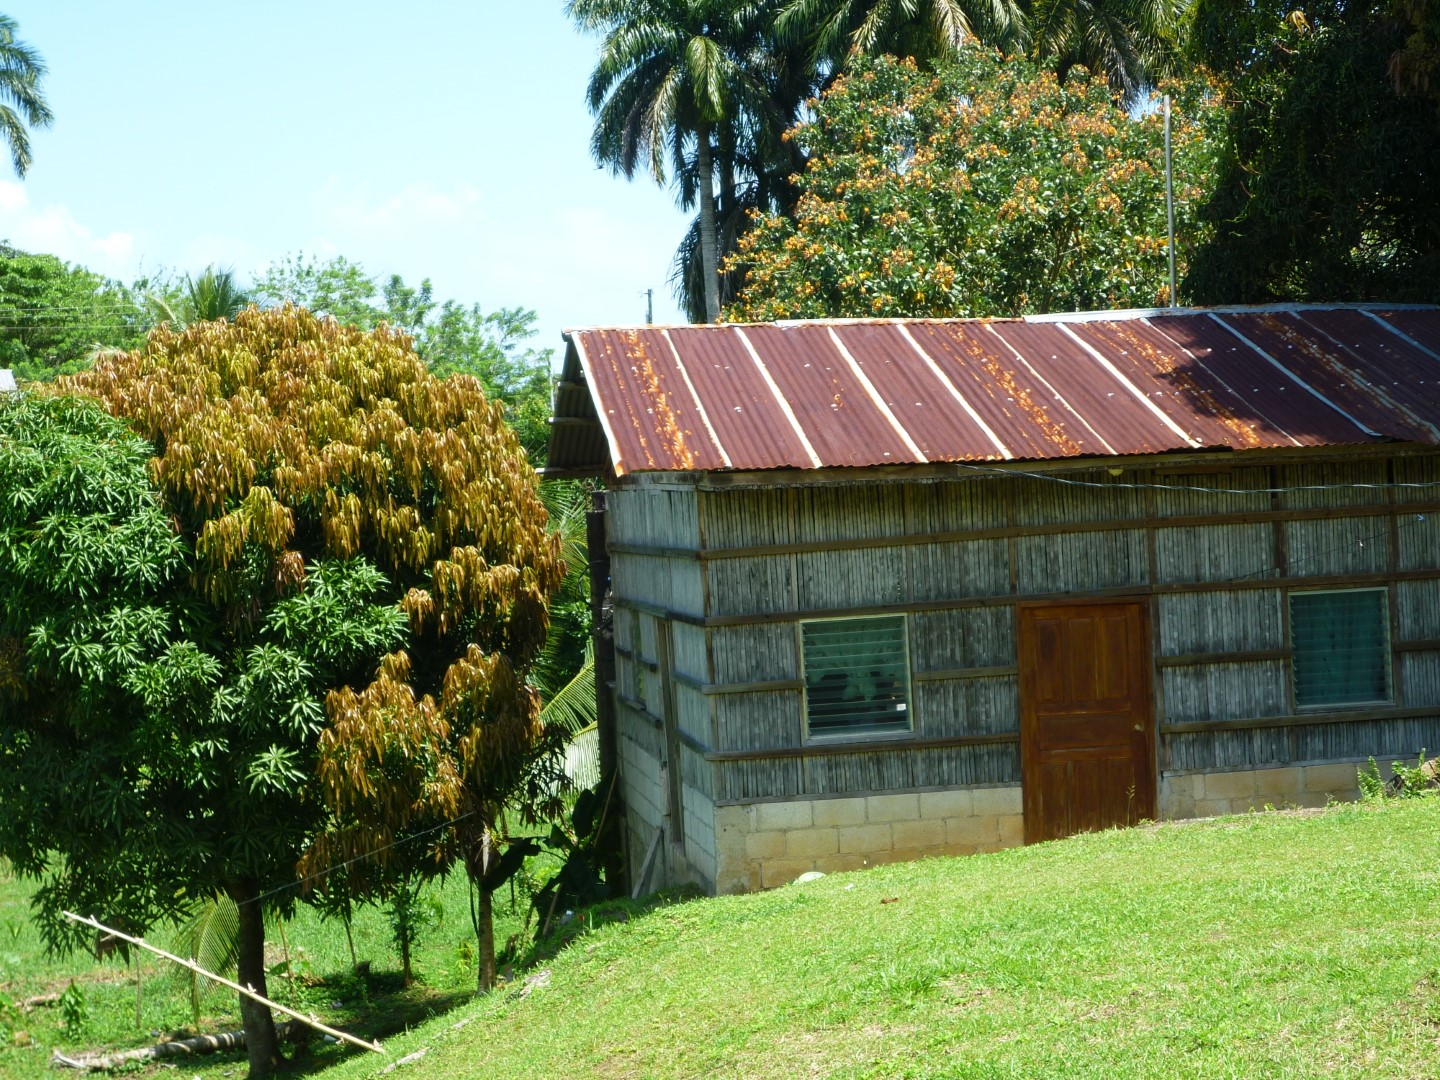 Old wooden house in Livingston, Guatemala